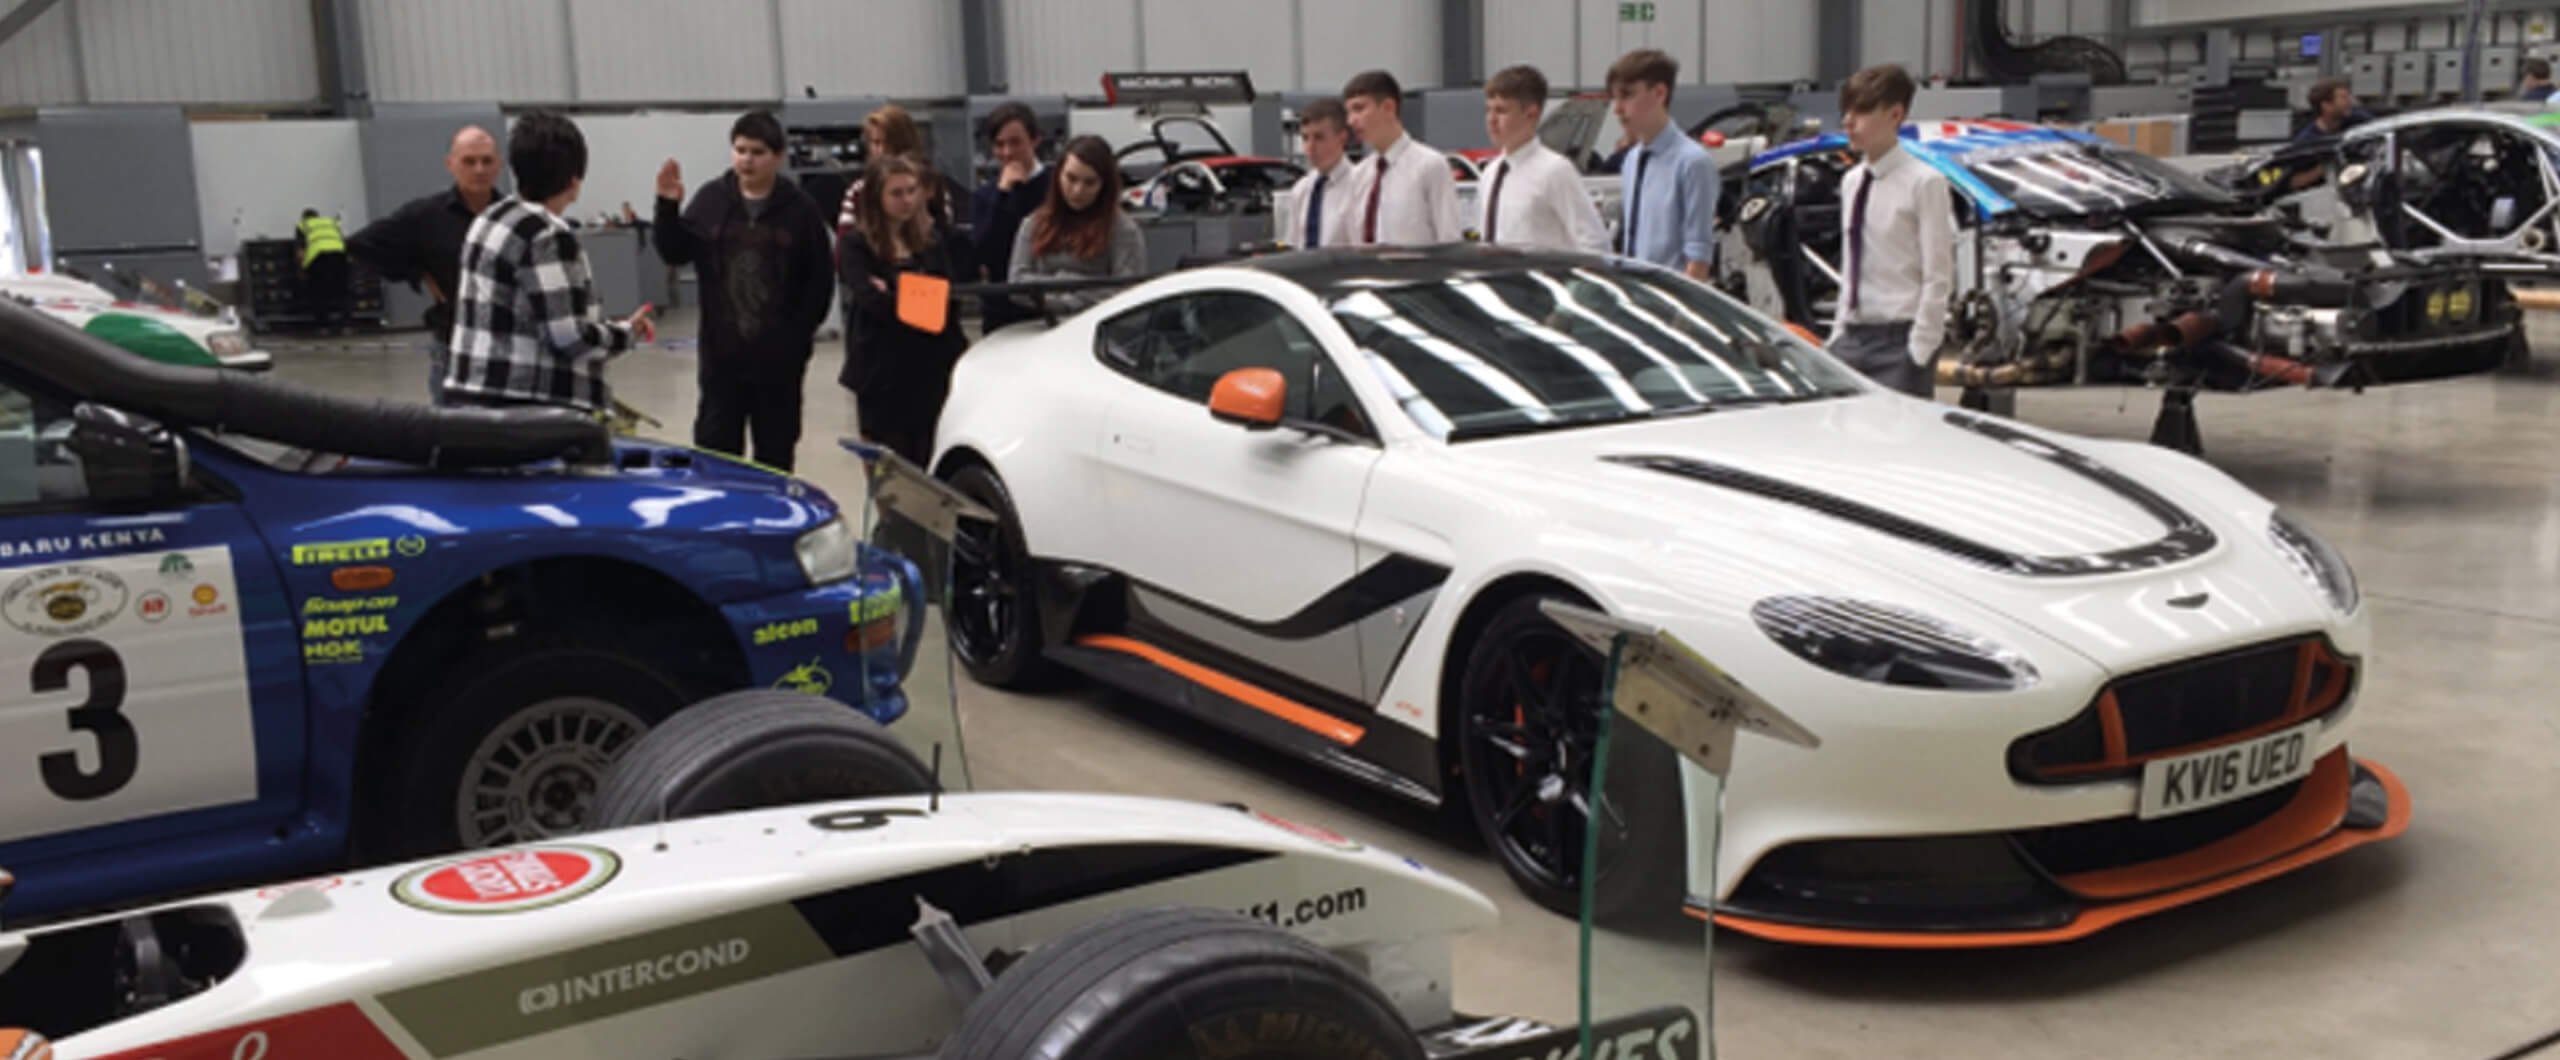 Racing Ahead with Attainment for All at Prodrive